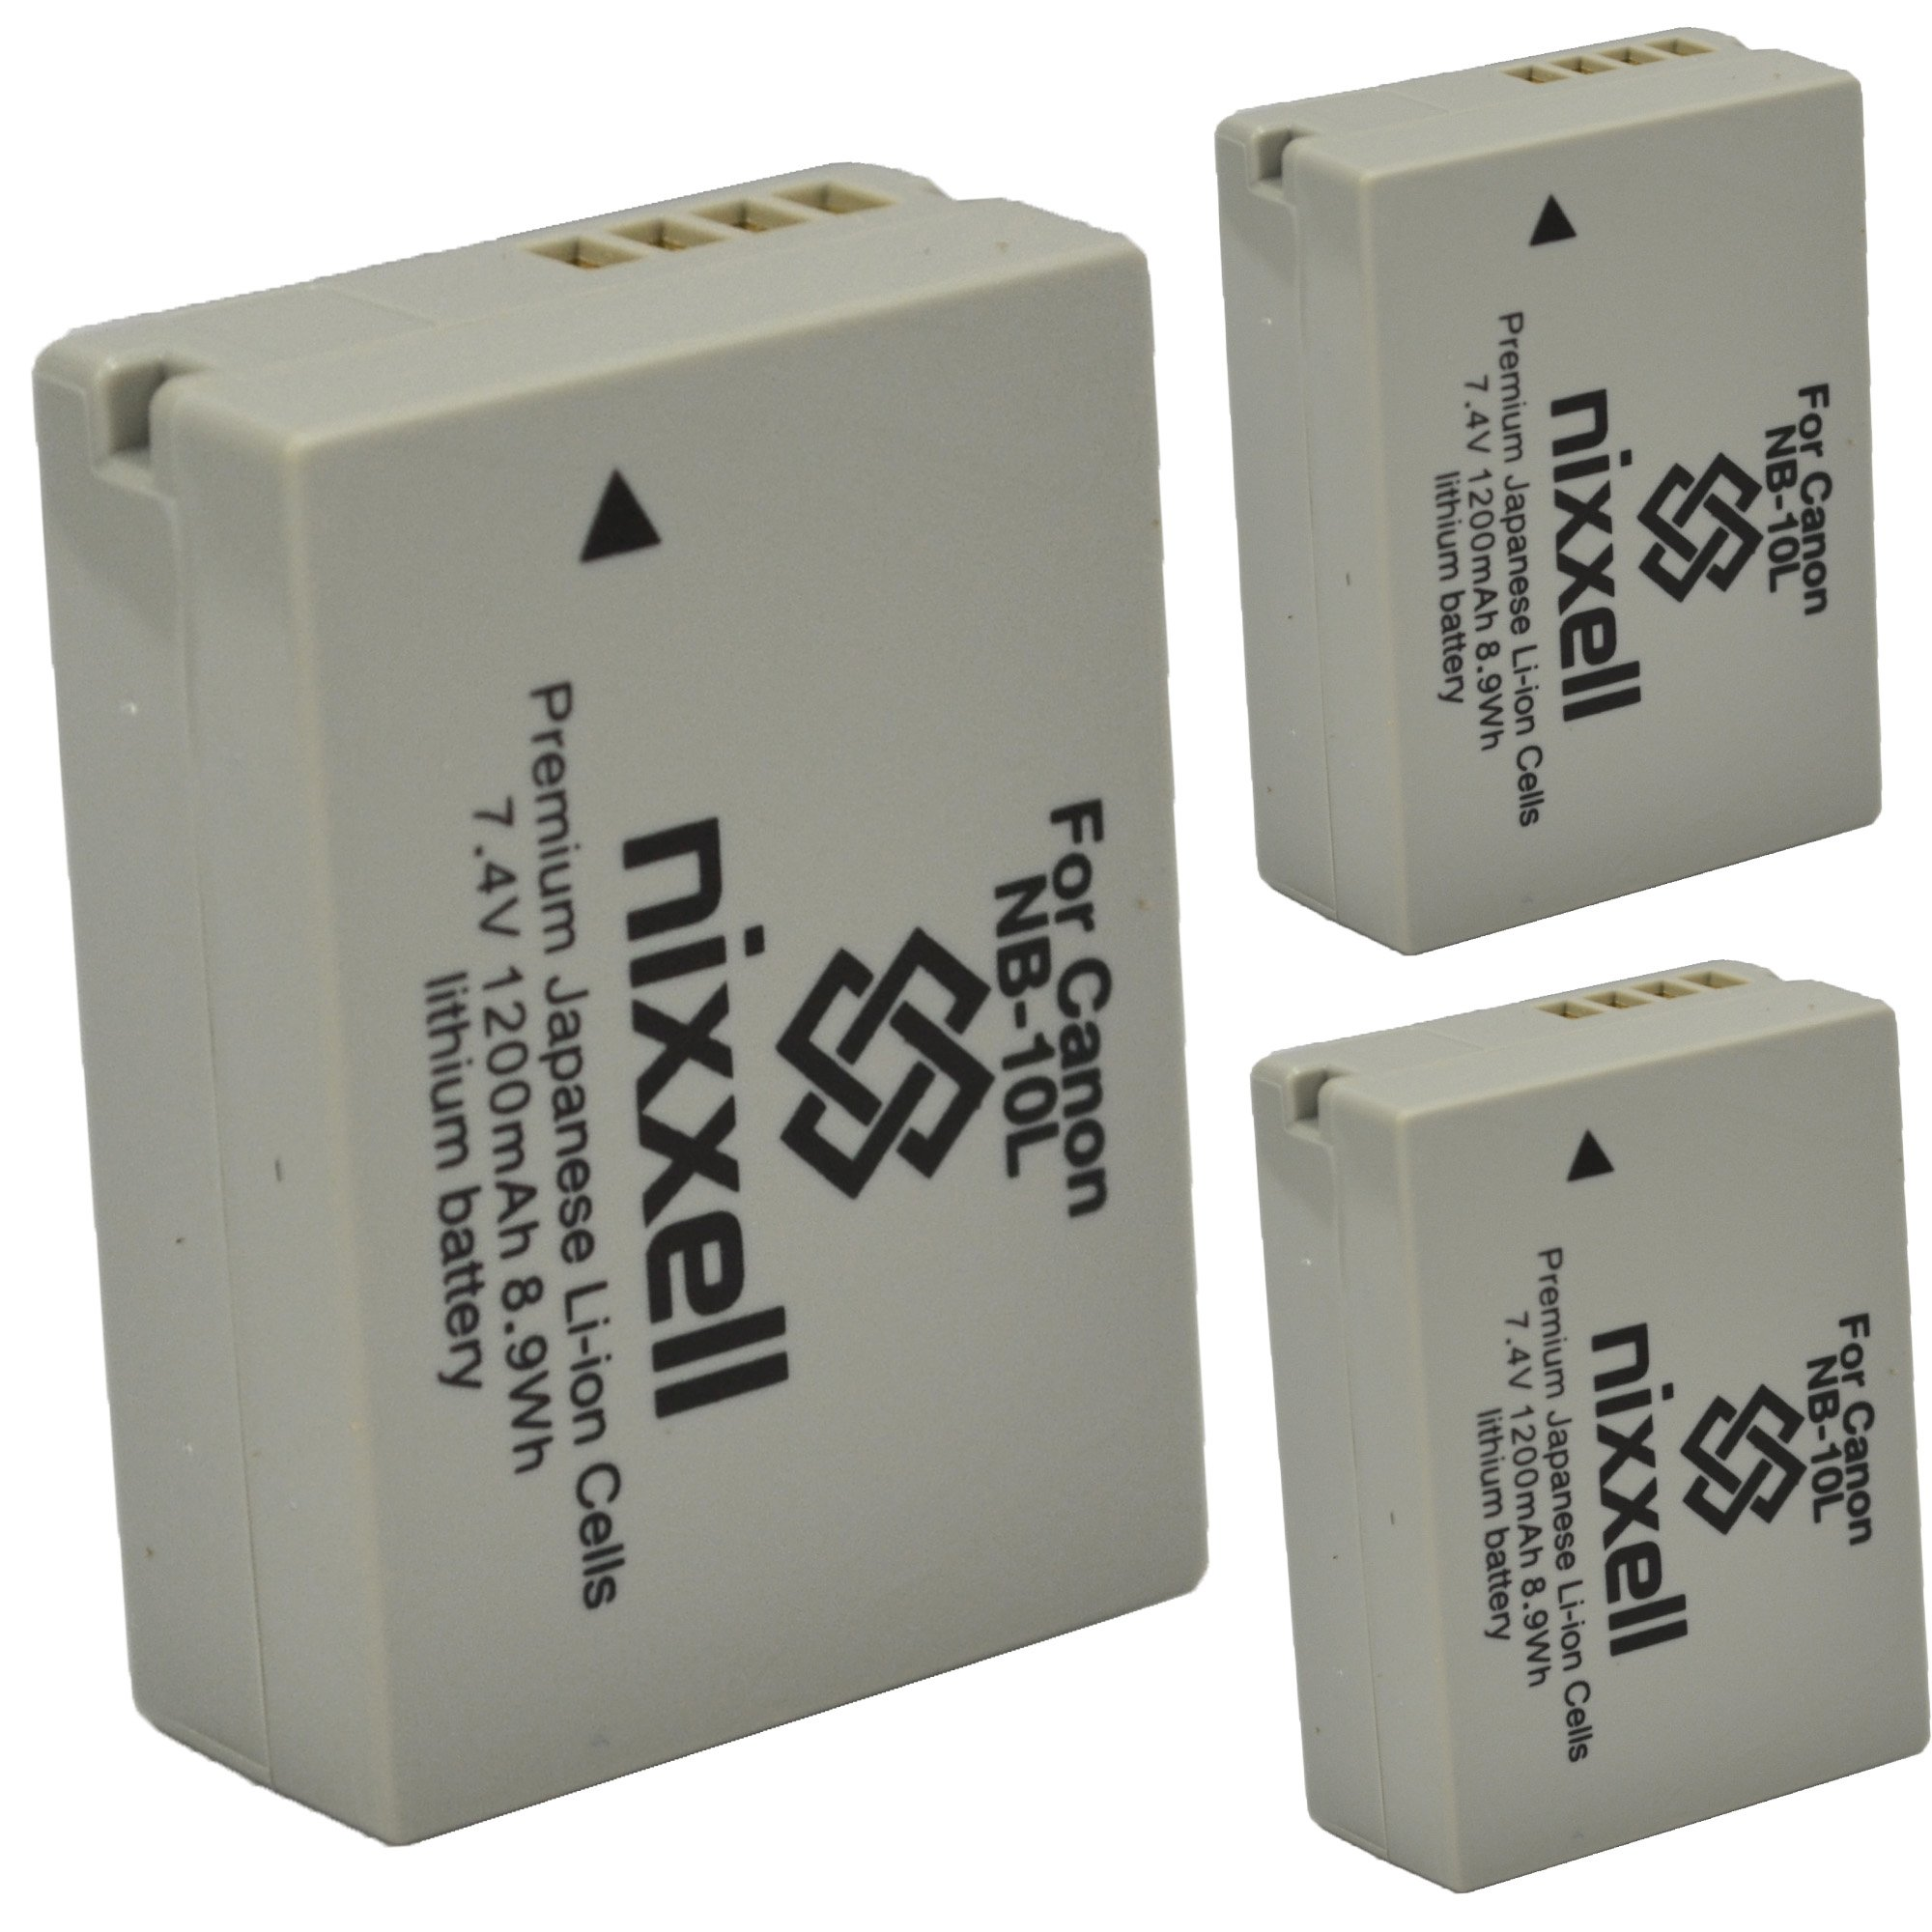 (3 Pack) Ultra High Capacity Nixxell Battery for Canon NB-10L CB-2LC for Canon PowerShot G1 X, PowerShot G15, PowerShot G16, PowerShot SX40 HS, PowerShot SX50 HS, PowerShot SX60 HS & Many More!